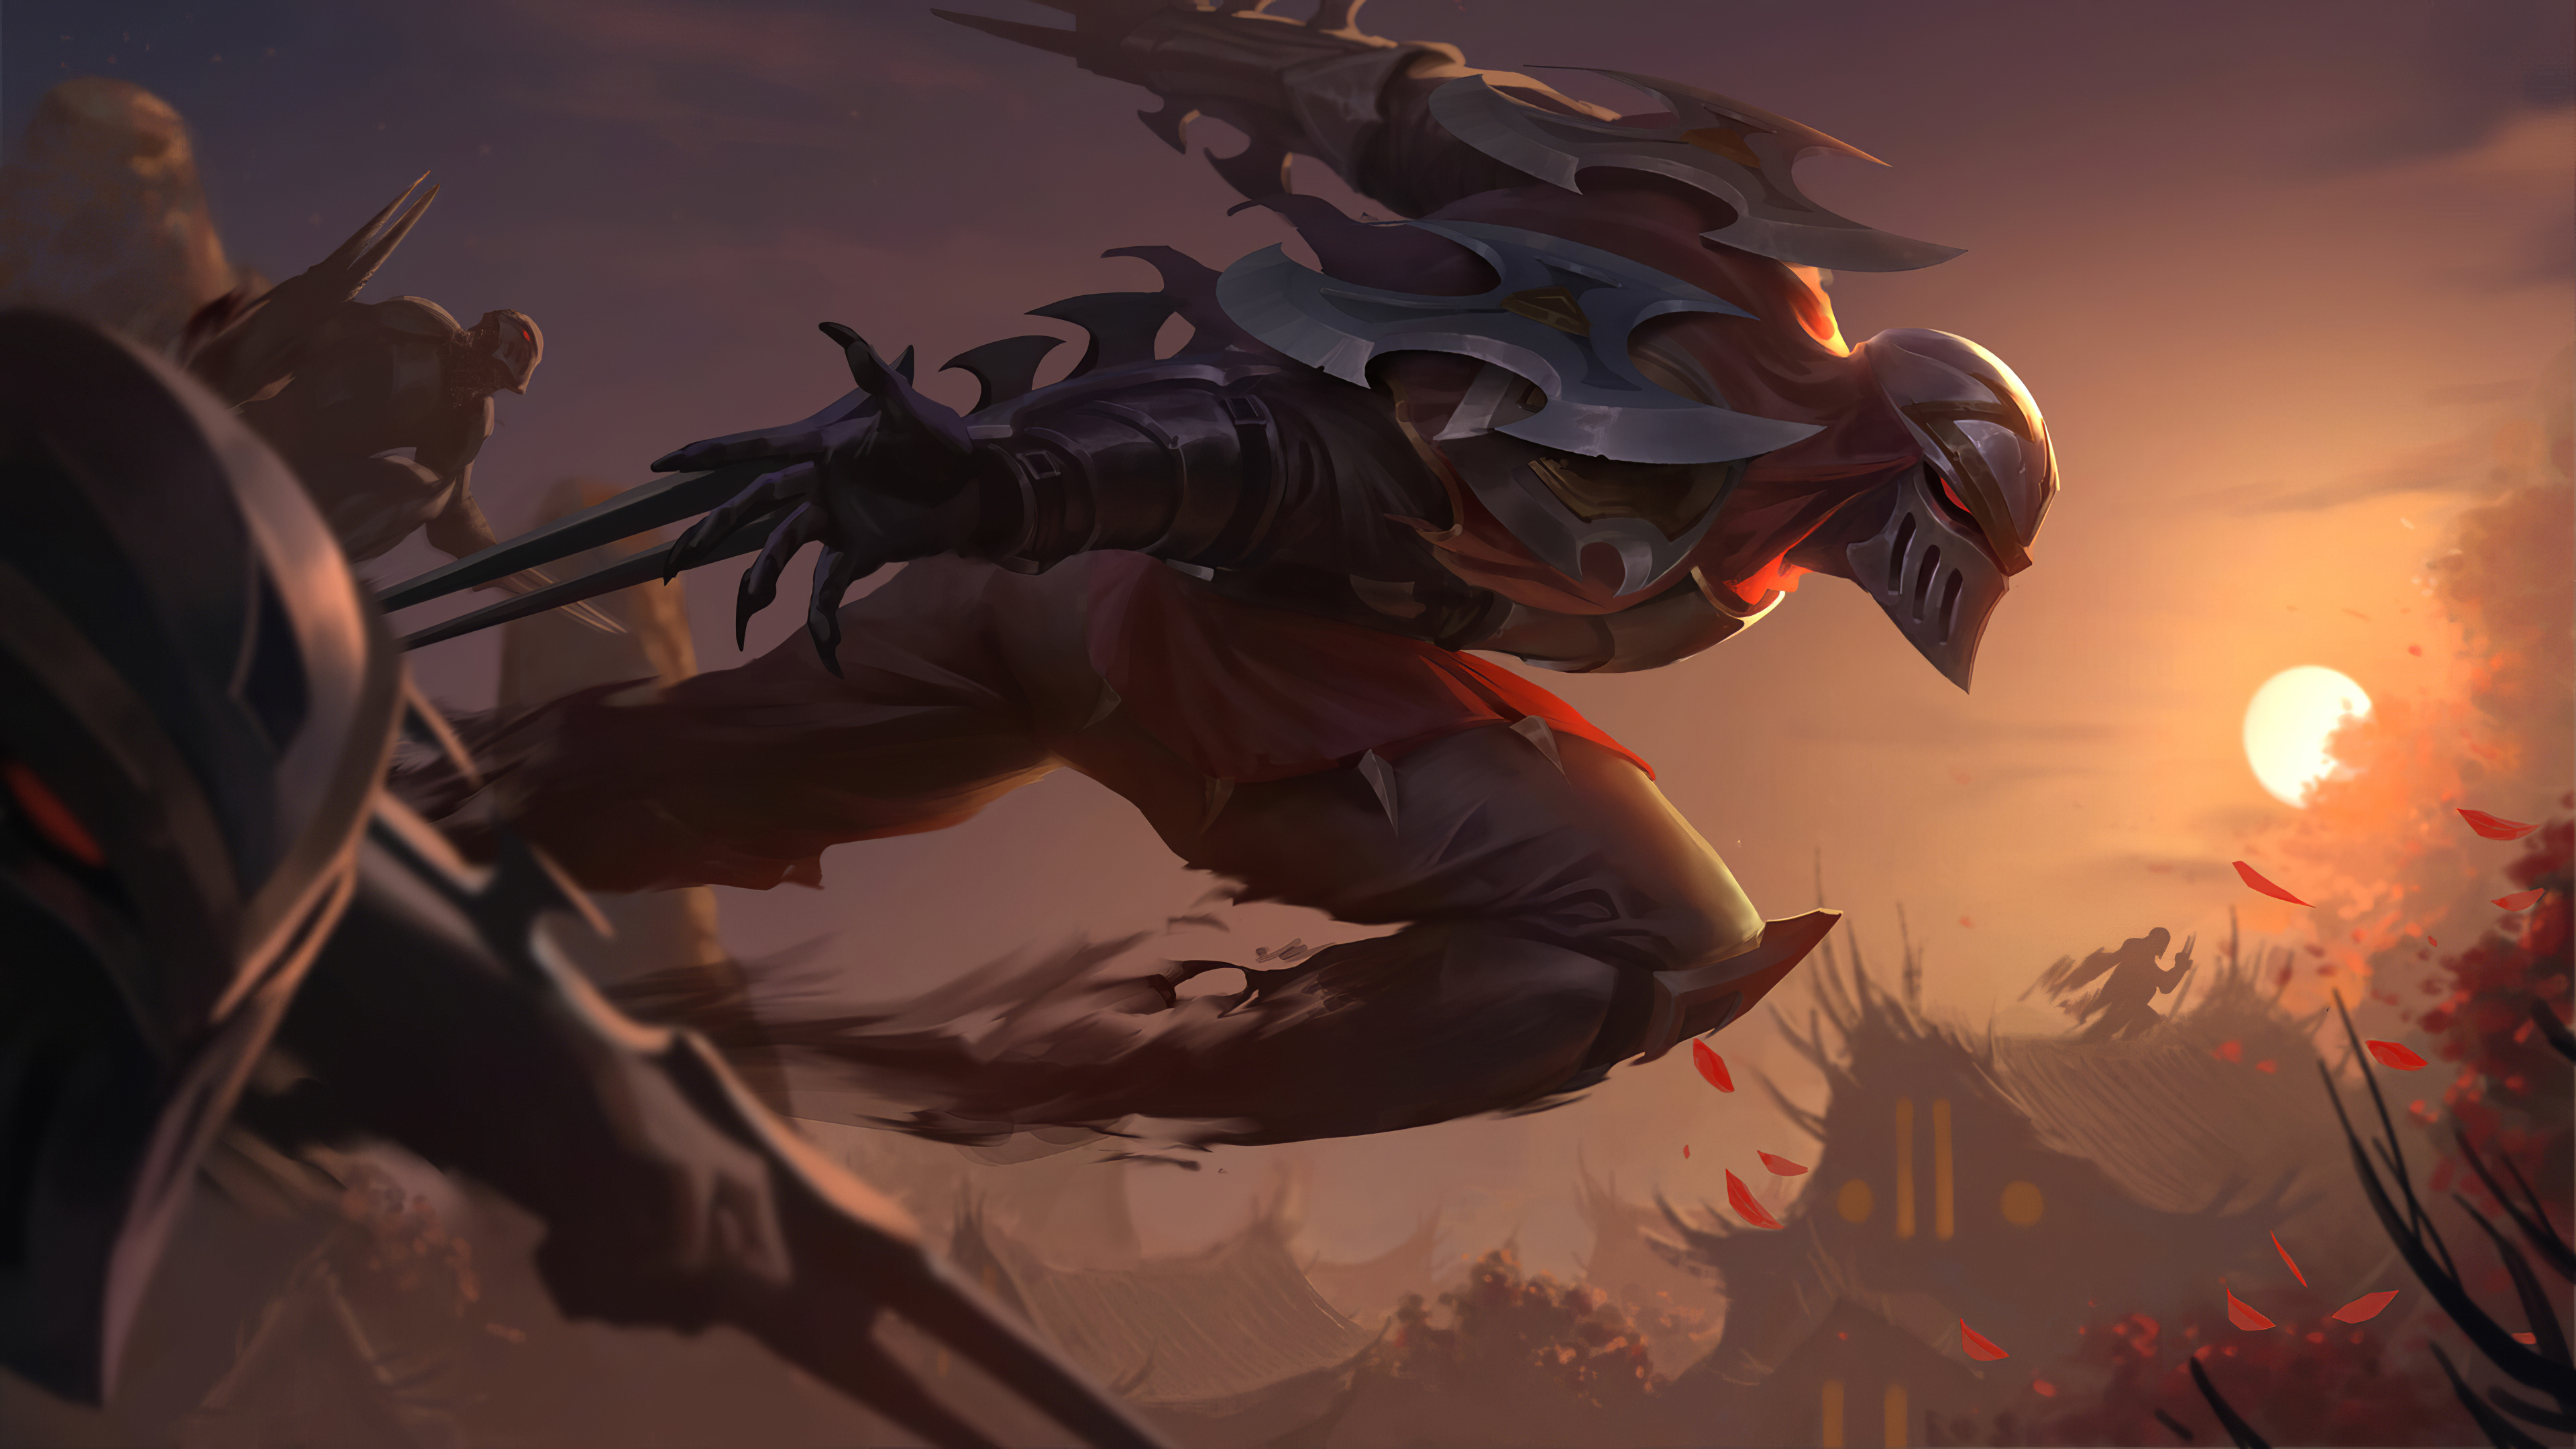 Zed Warrior 4k Hd Artist 4k Wallpapers Images Backgrounds Photos And Pictures